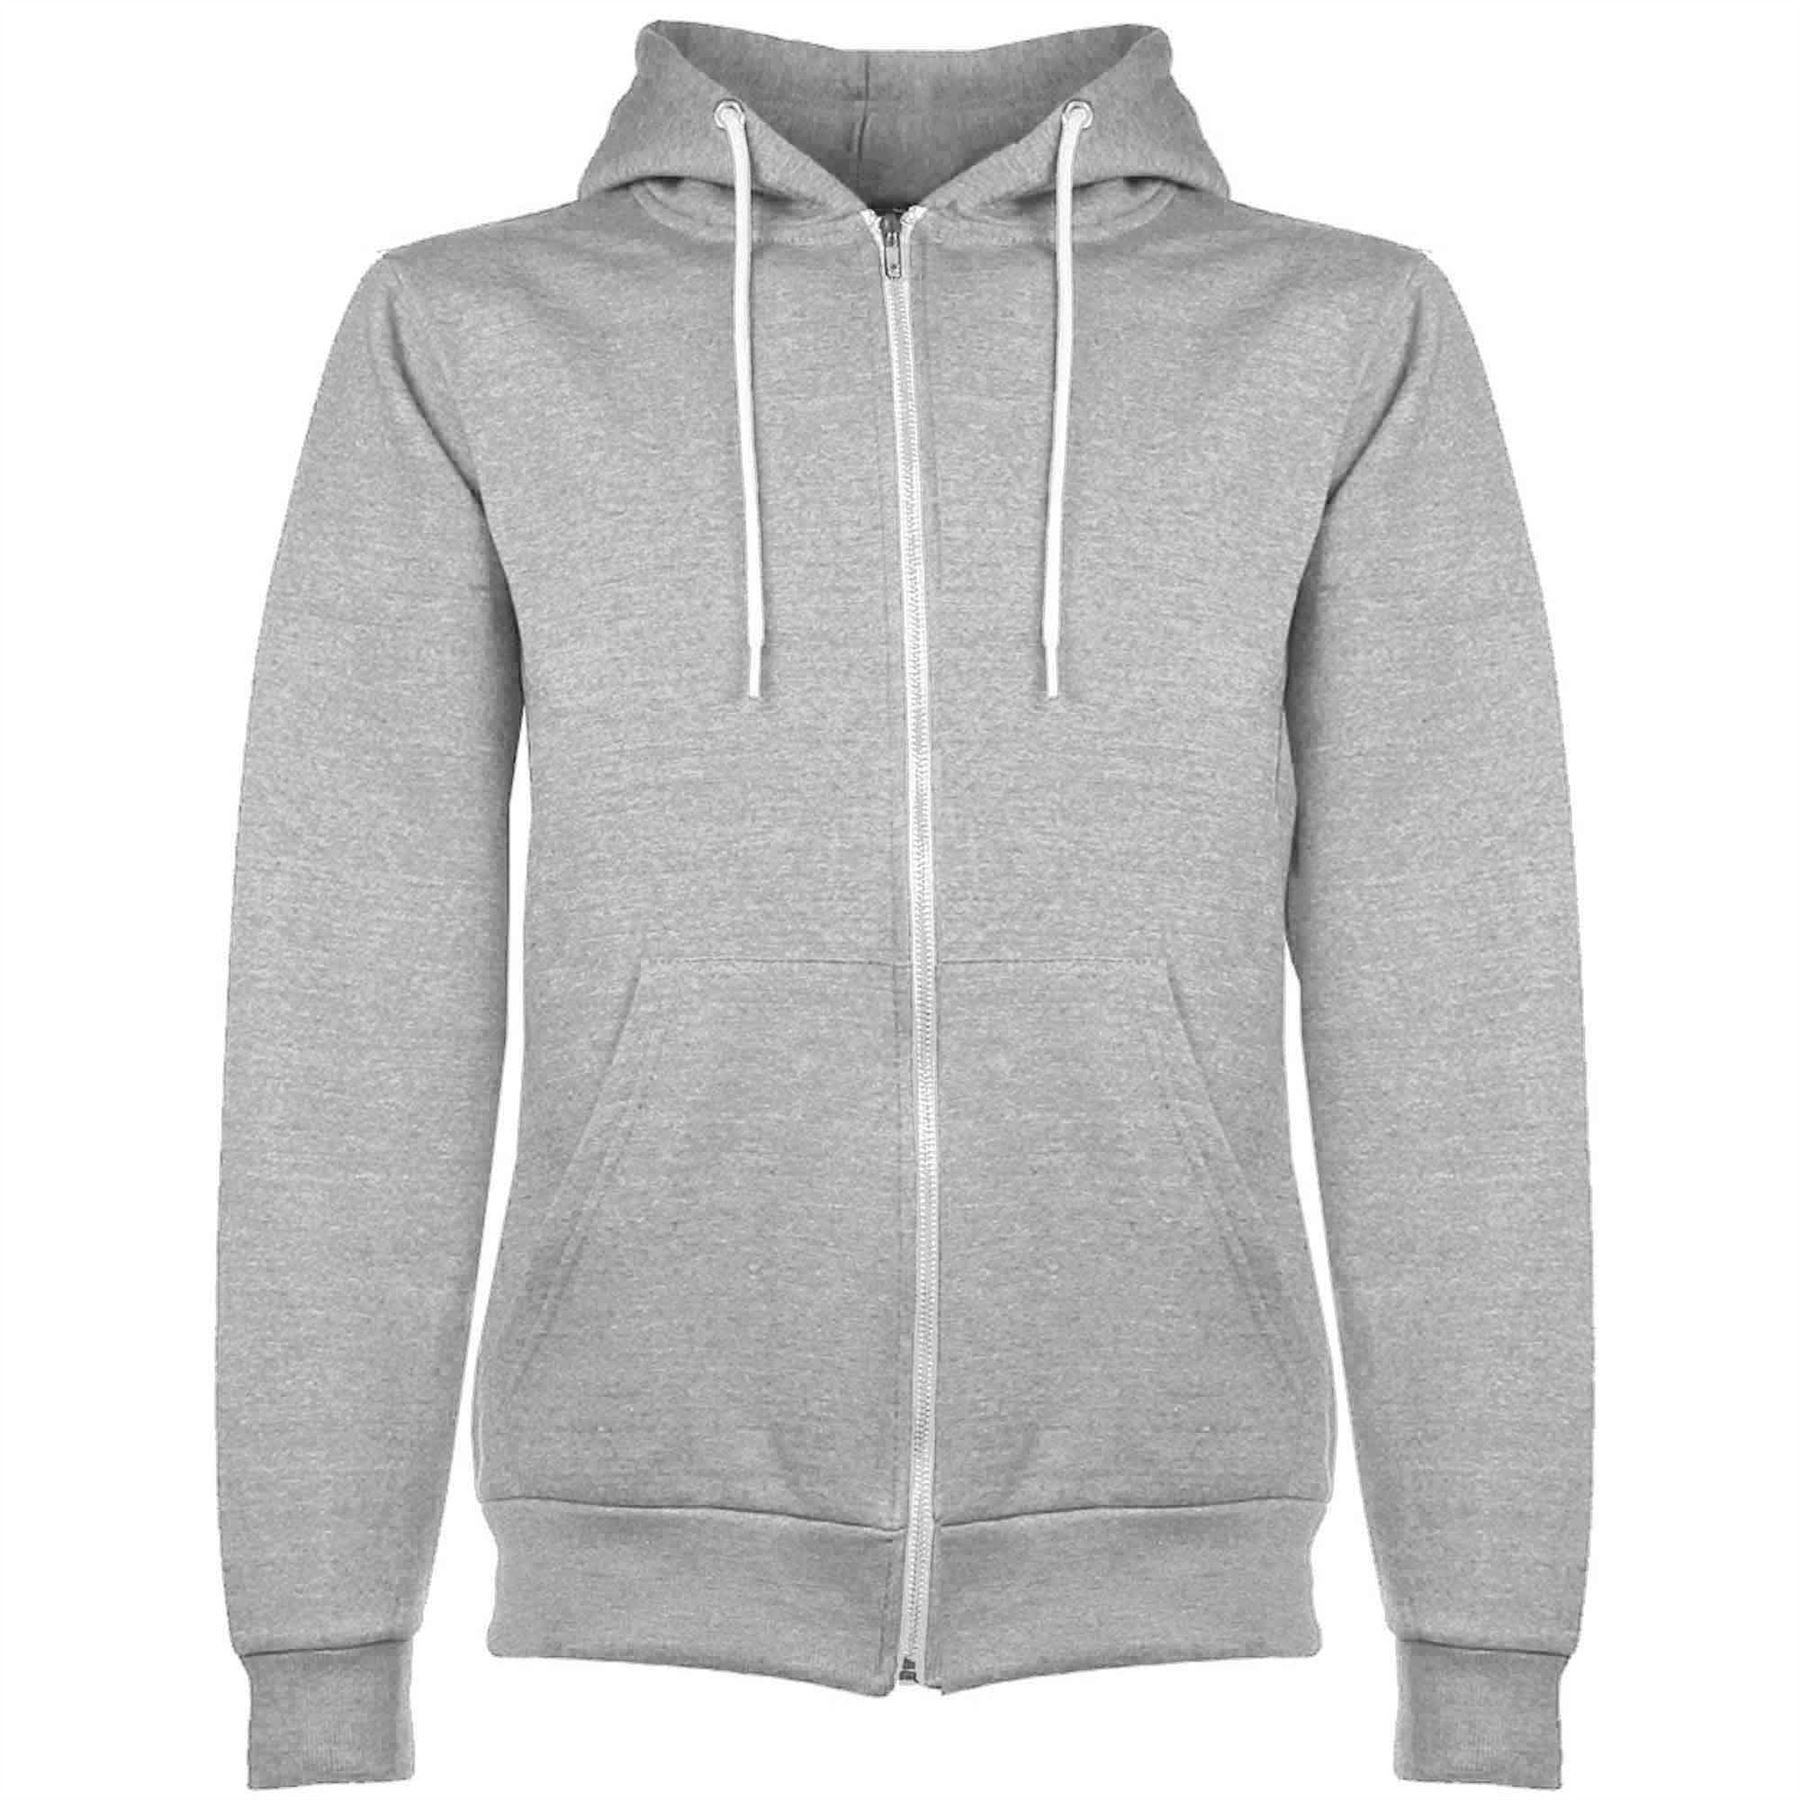 Mens zip hoodies